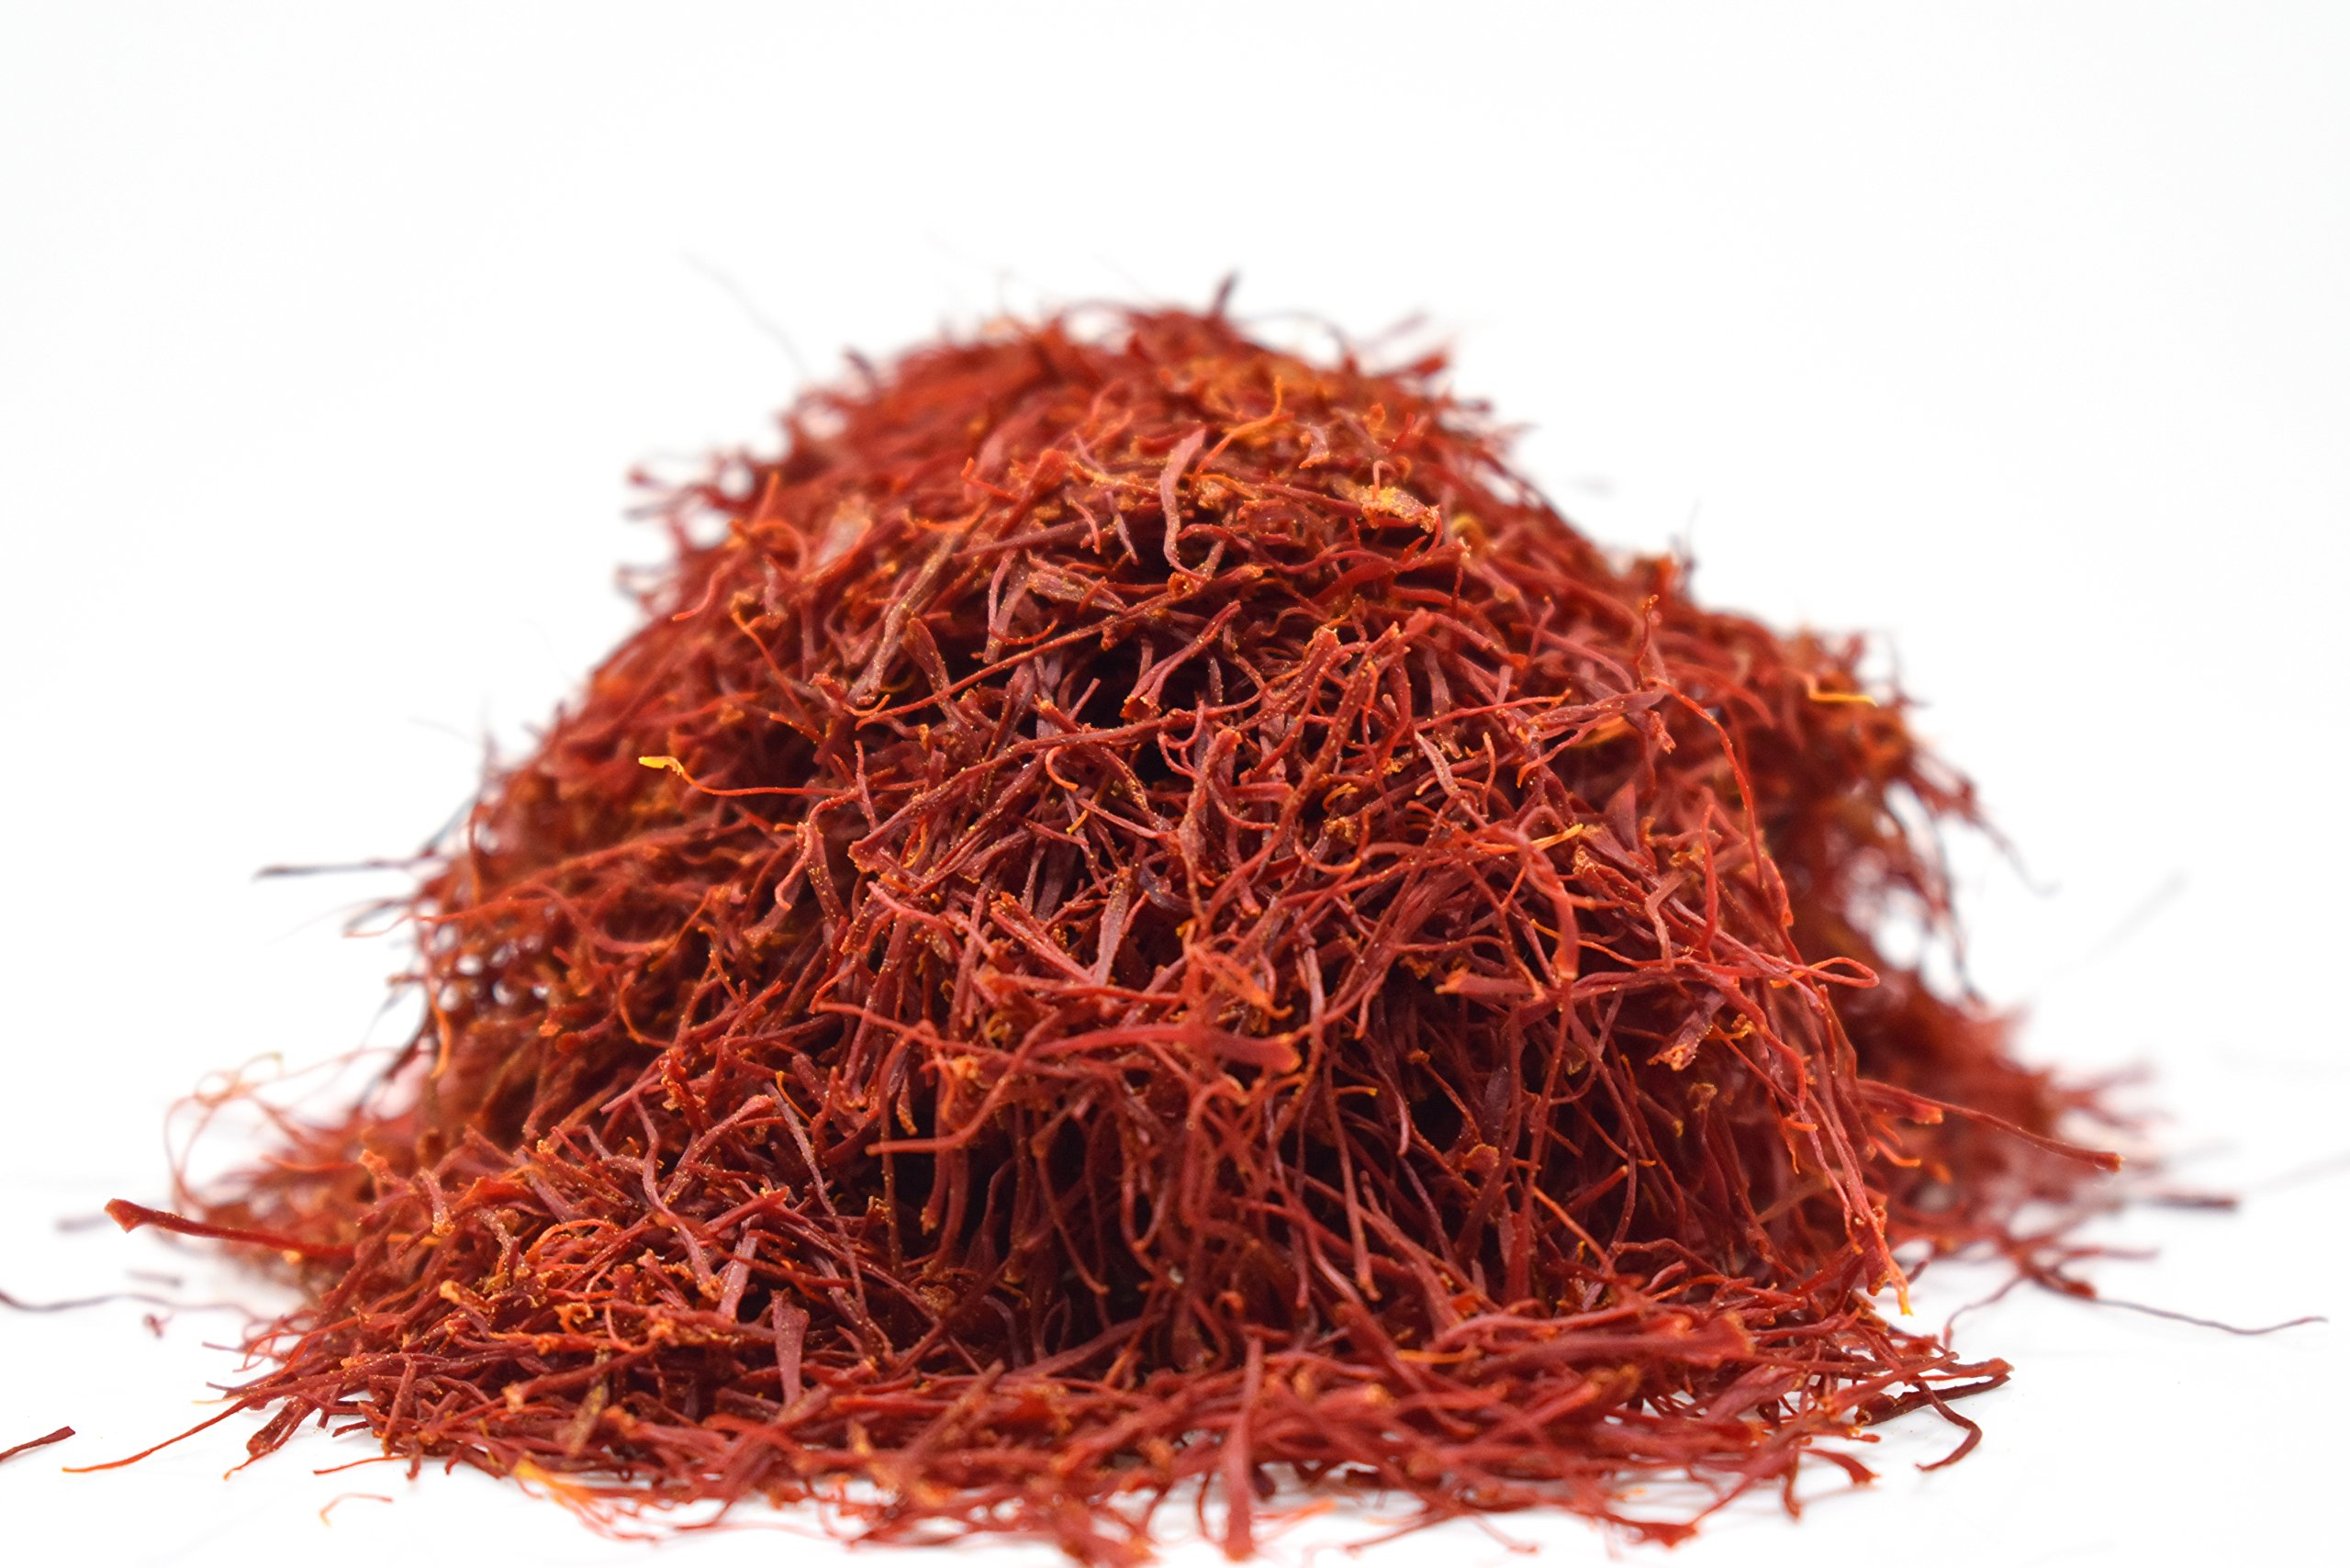 Persian Saffron Threads by Slofoodgroup Premium Quality Saffron Threads, All Red Saffron Filaments (various sizes) Grade I Saffron (1 Ounce Saffron) by SLO FOOD GROUP (Image #2)